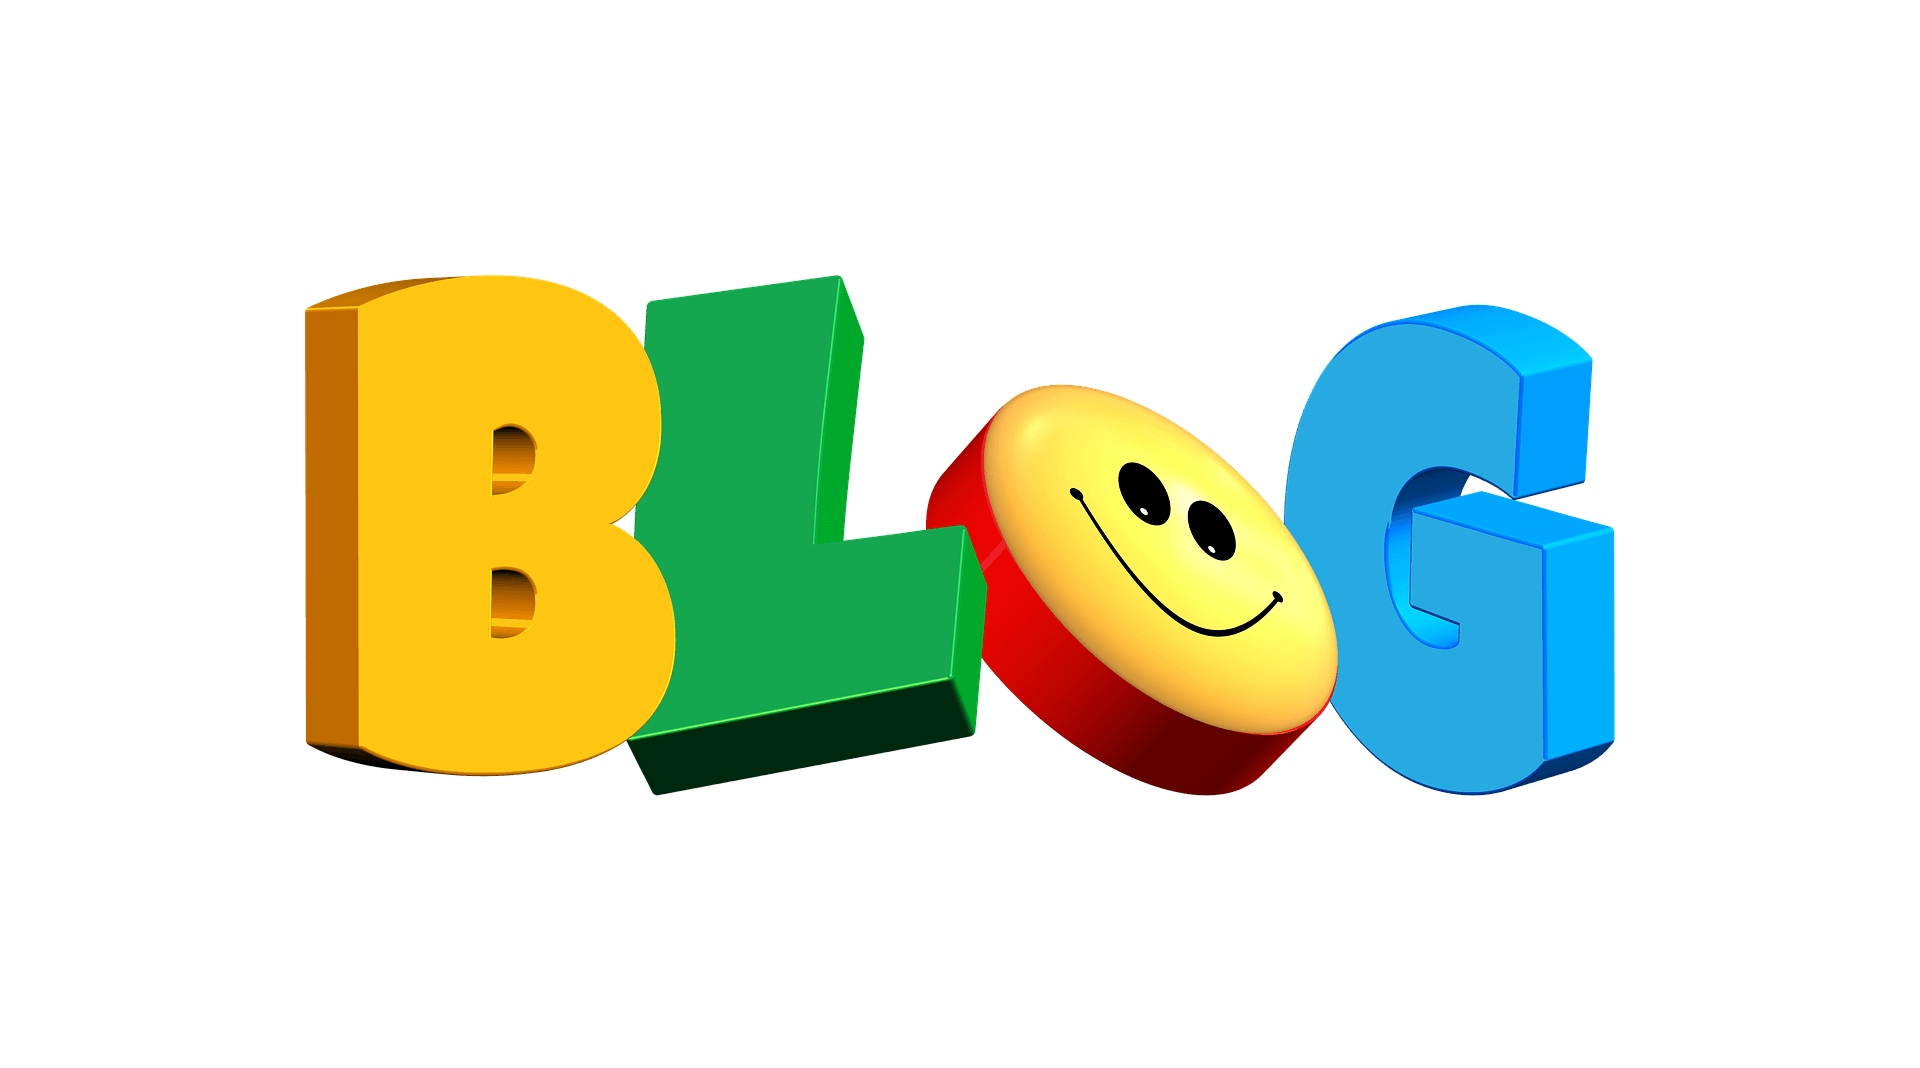 Making Money Via Adsense and Blogging